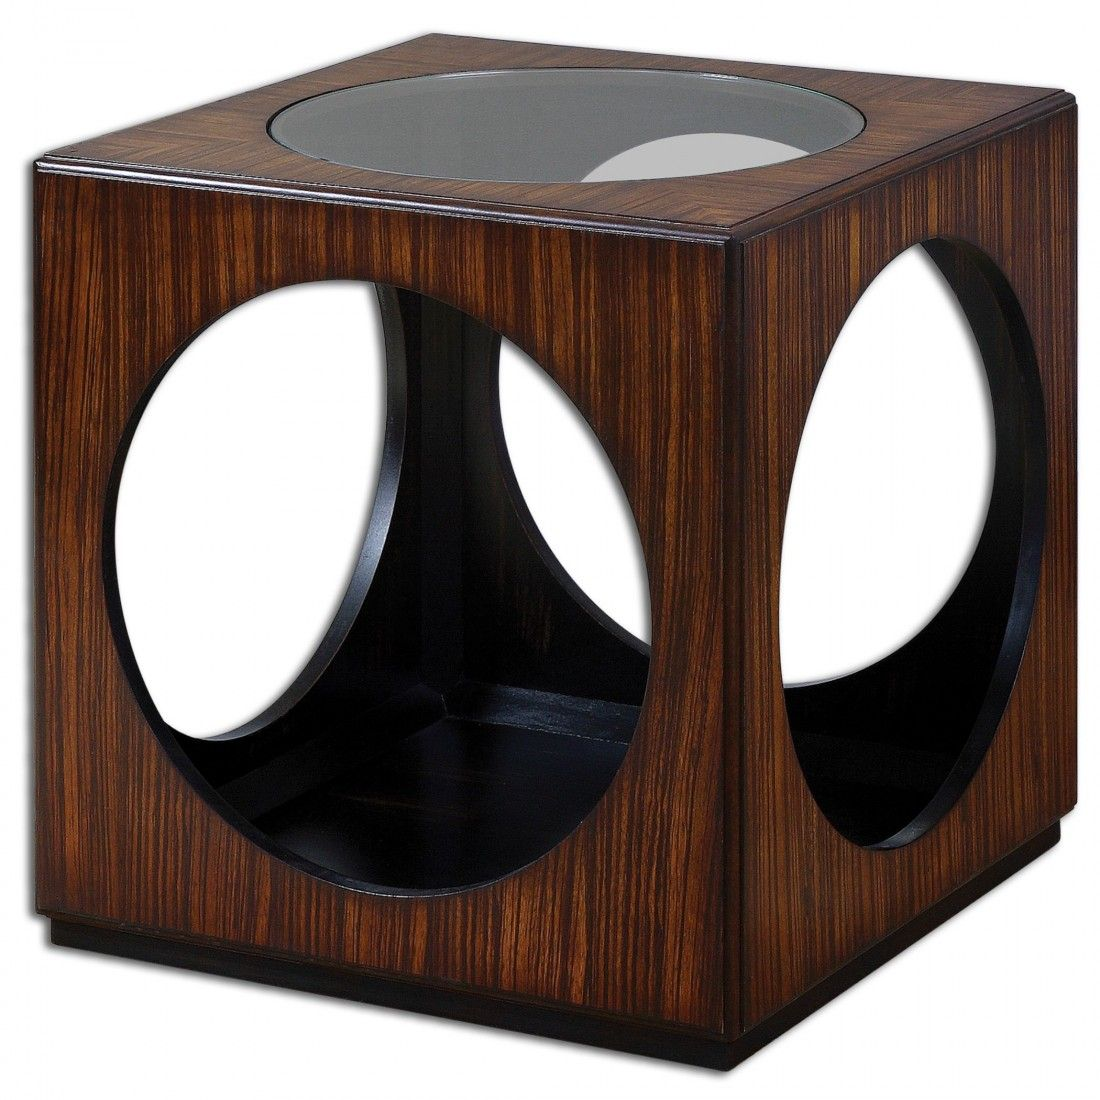 uttermost tura cube accent table andson dice richly grained zebra wood veneer with open cutouts and clear glass top patio chair covers floor length mirror leather bean bag modern